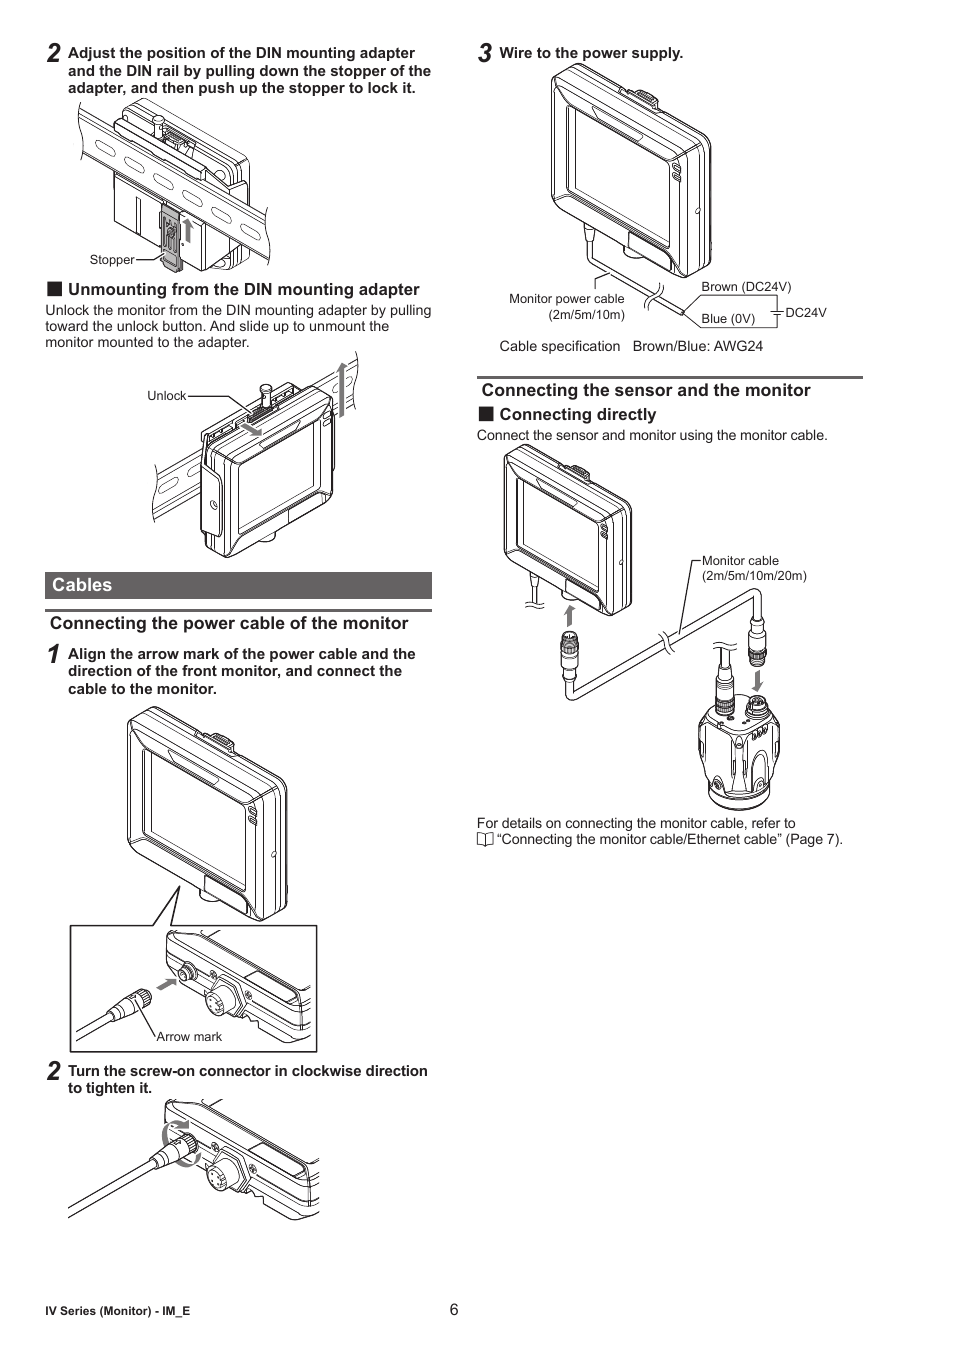 Unmounting from the din mounting adapter, Cables